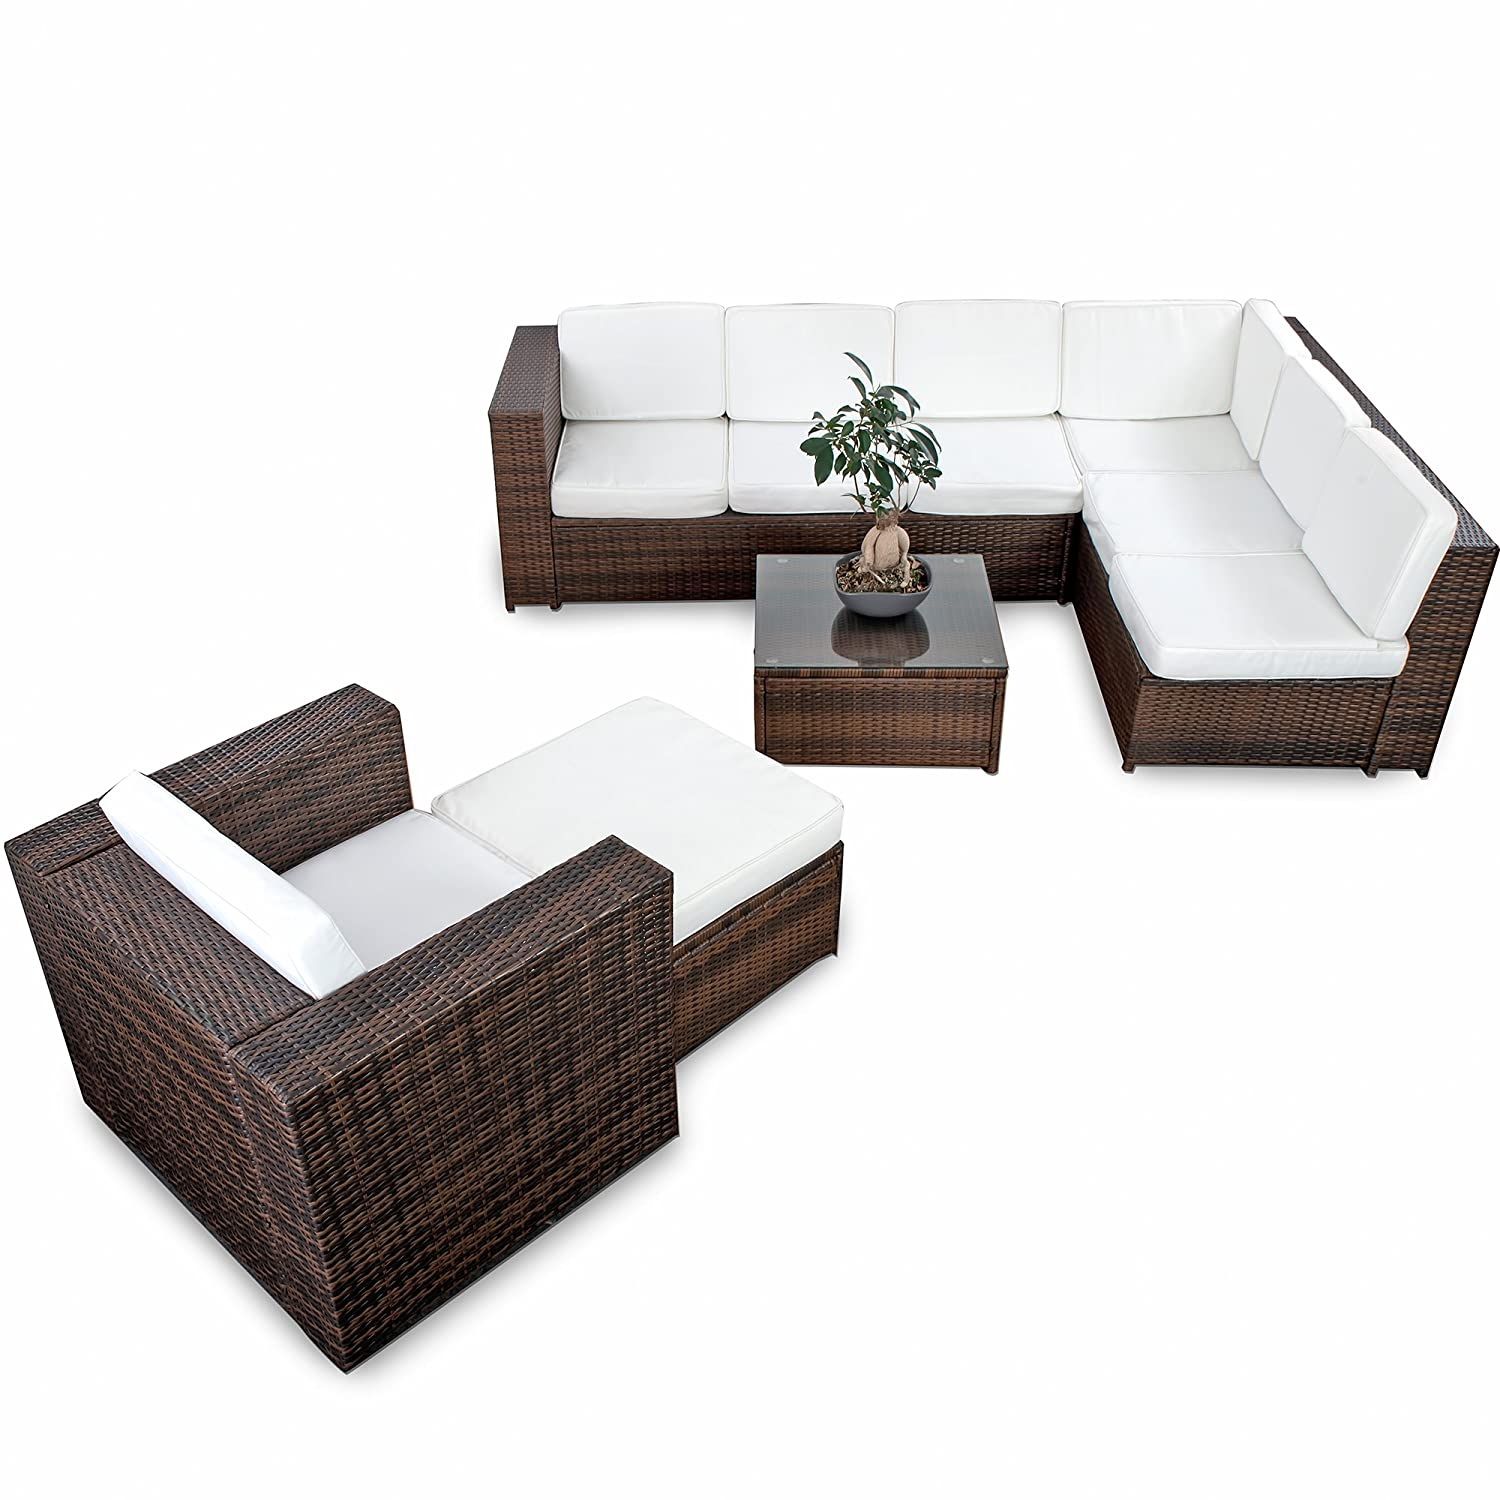 Outdoor loungembel polyrattan loungemobel polyrattan for Loungemobel outdoor kissen